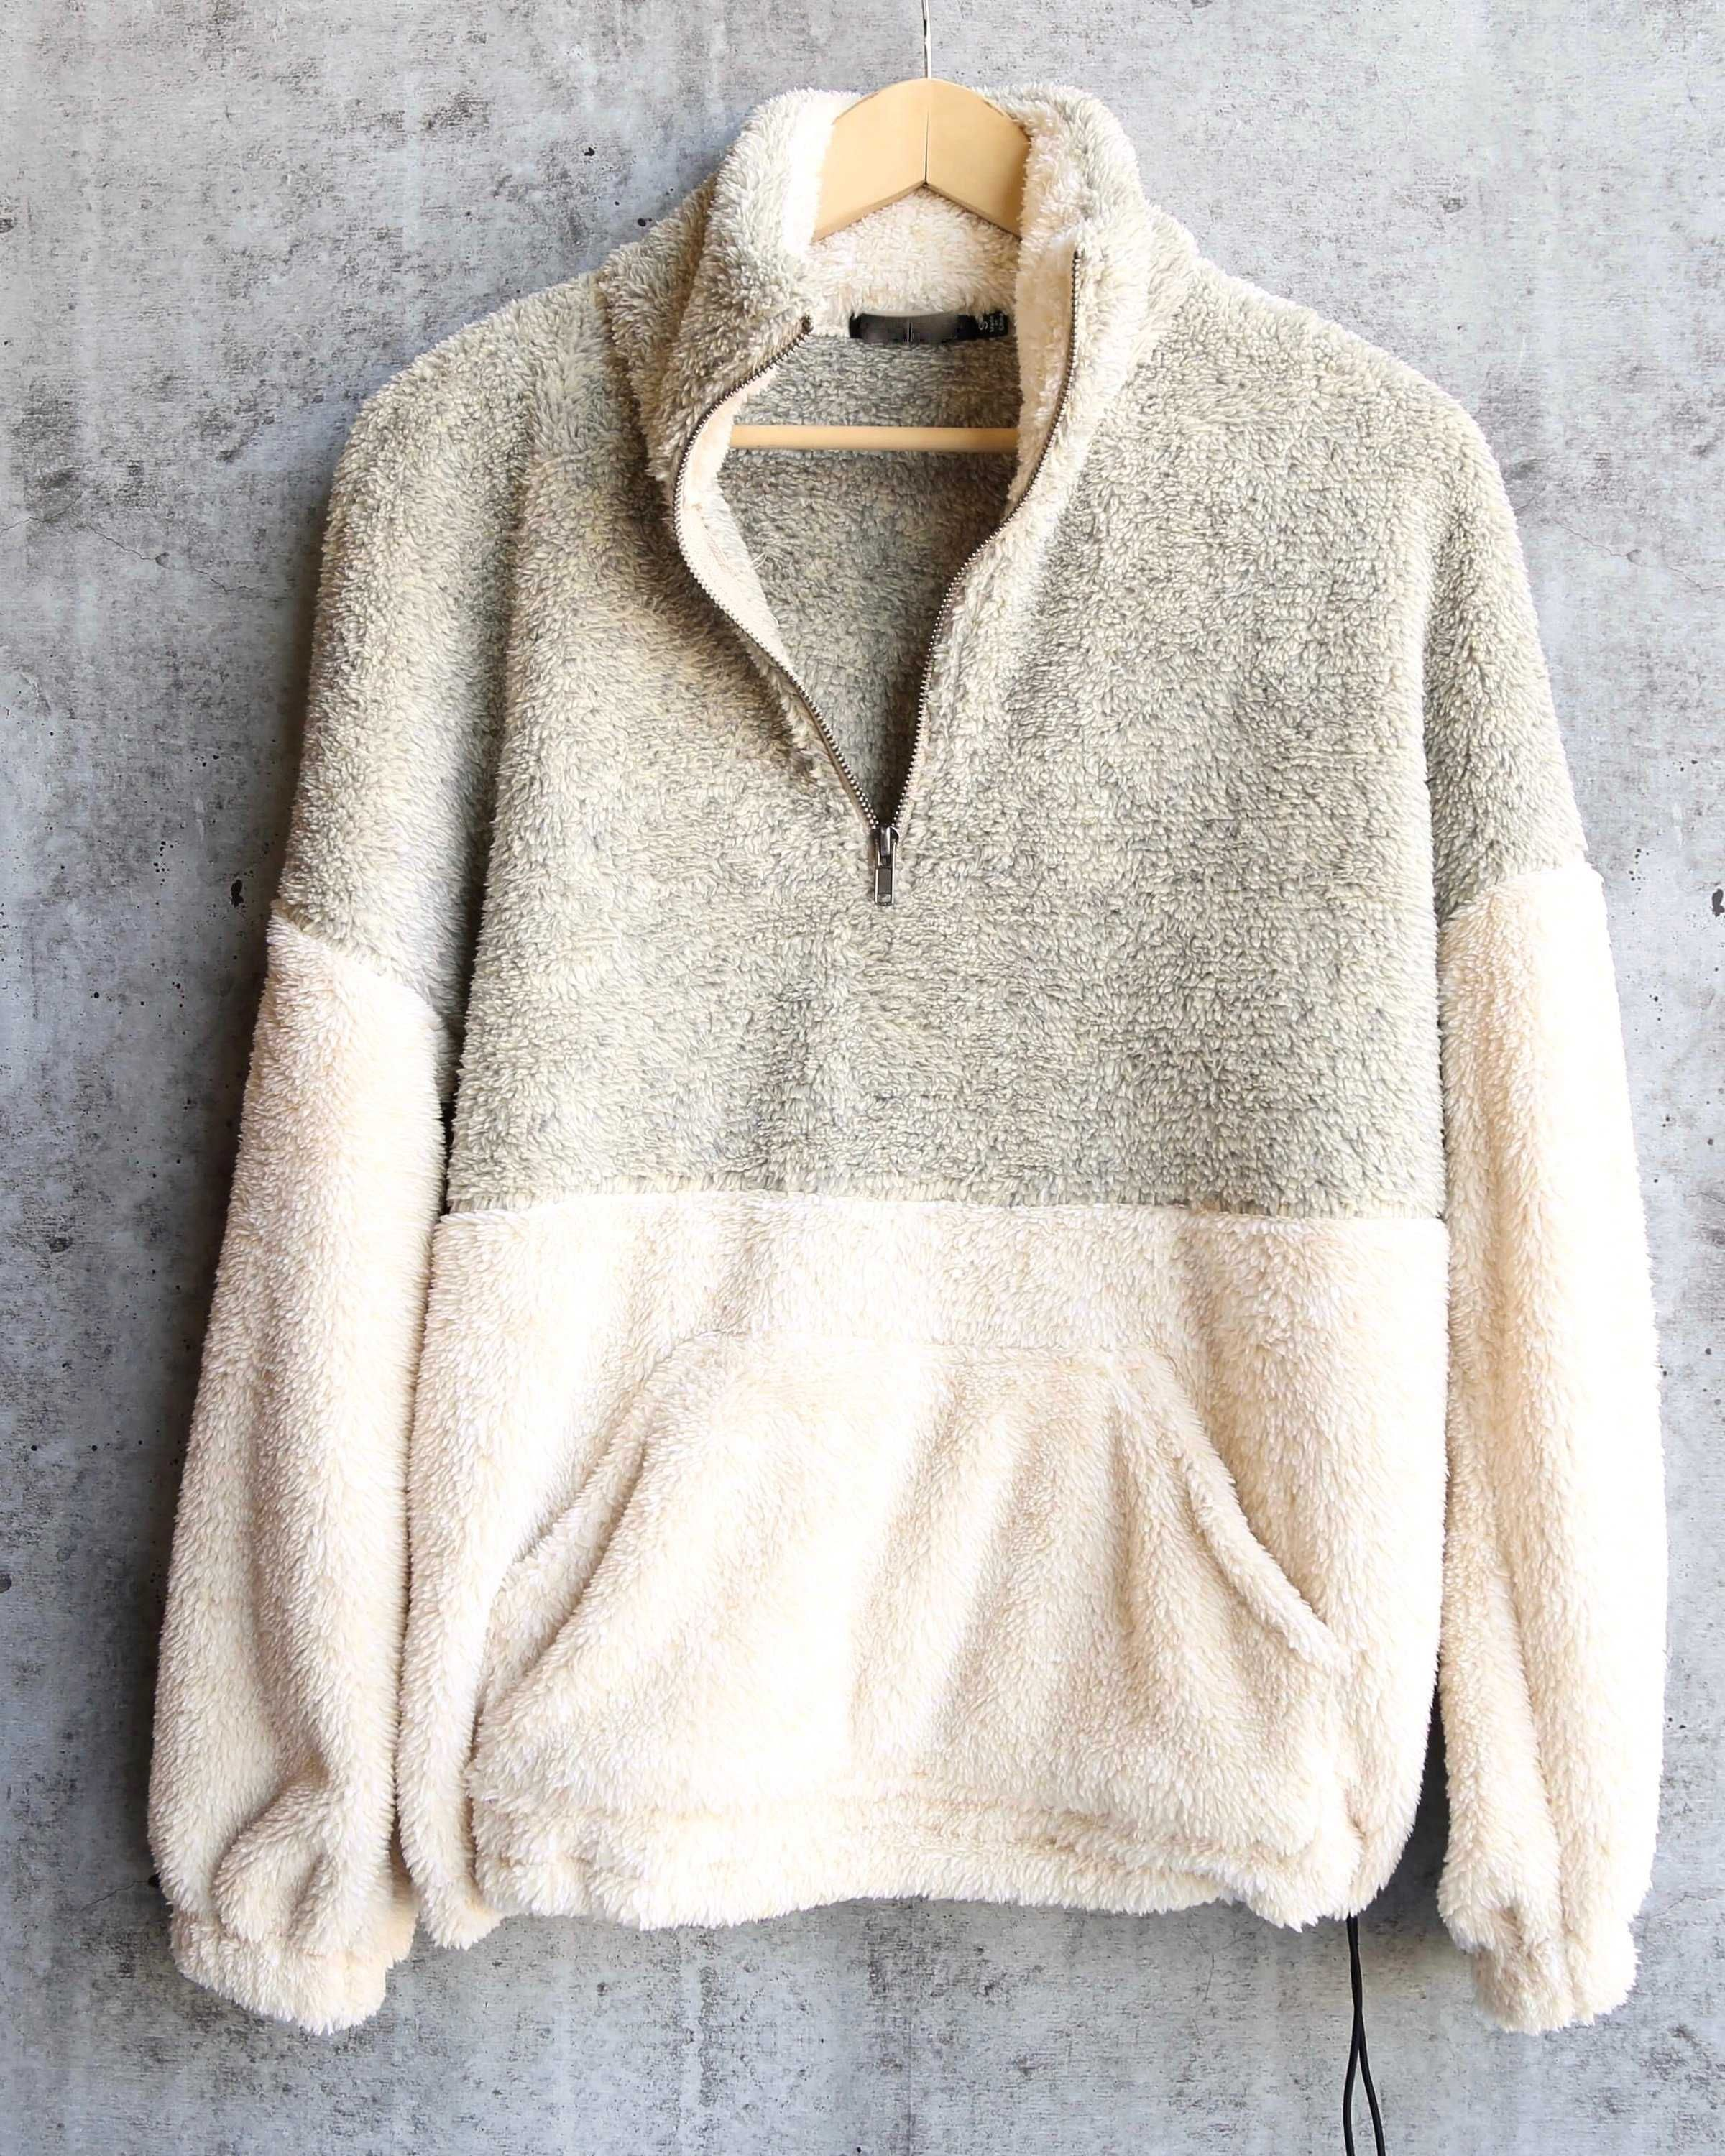 e60458791e5 high pile fuzzy quarter zip sherpa pullover womens fleece lined shearling  sweatshirt plus size Buy 1 Get 1 20% OFF Code  SUNIVEST While buy ANY  pullover